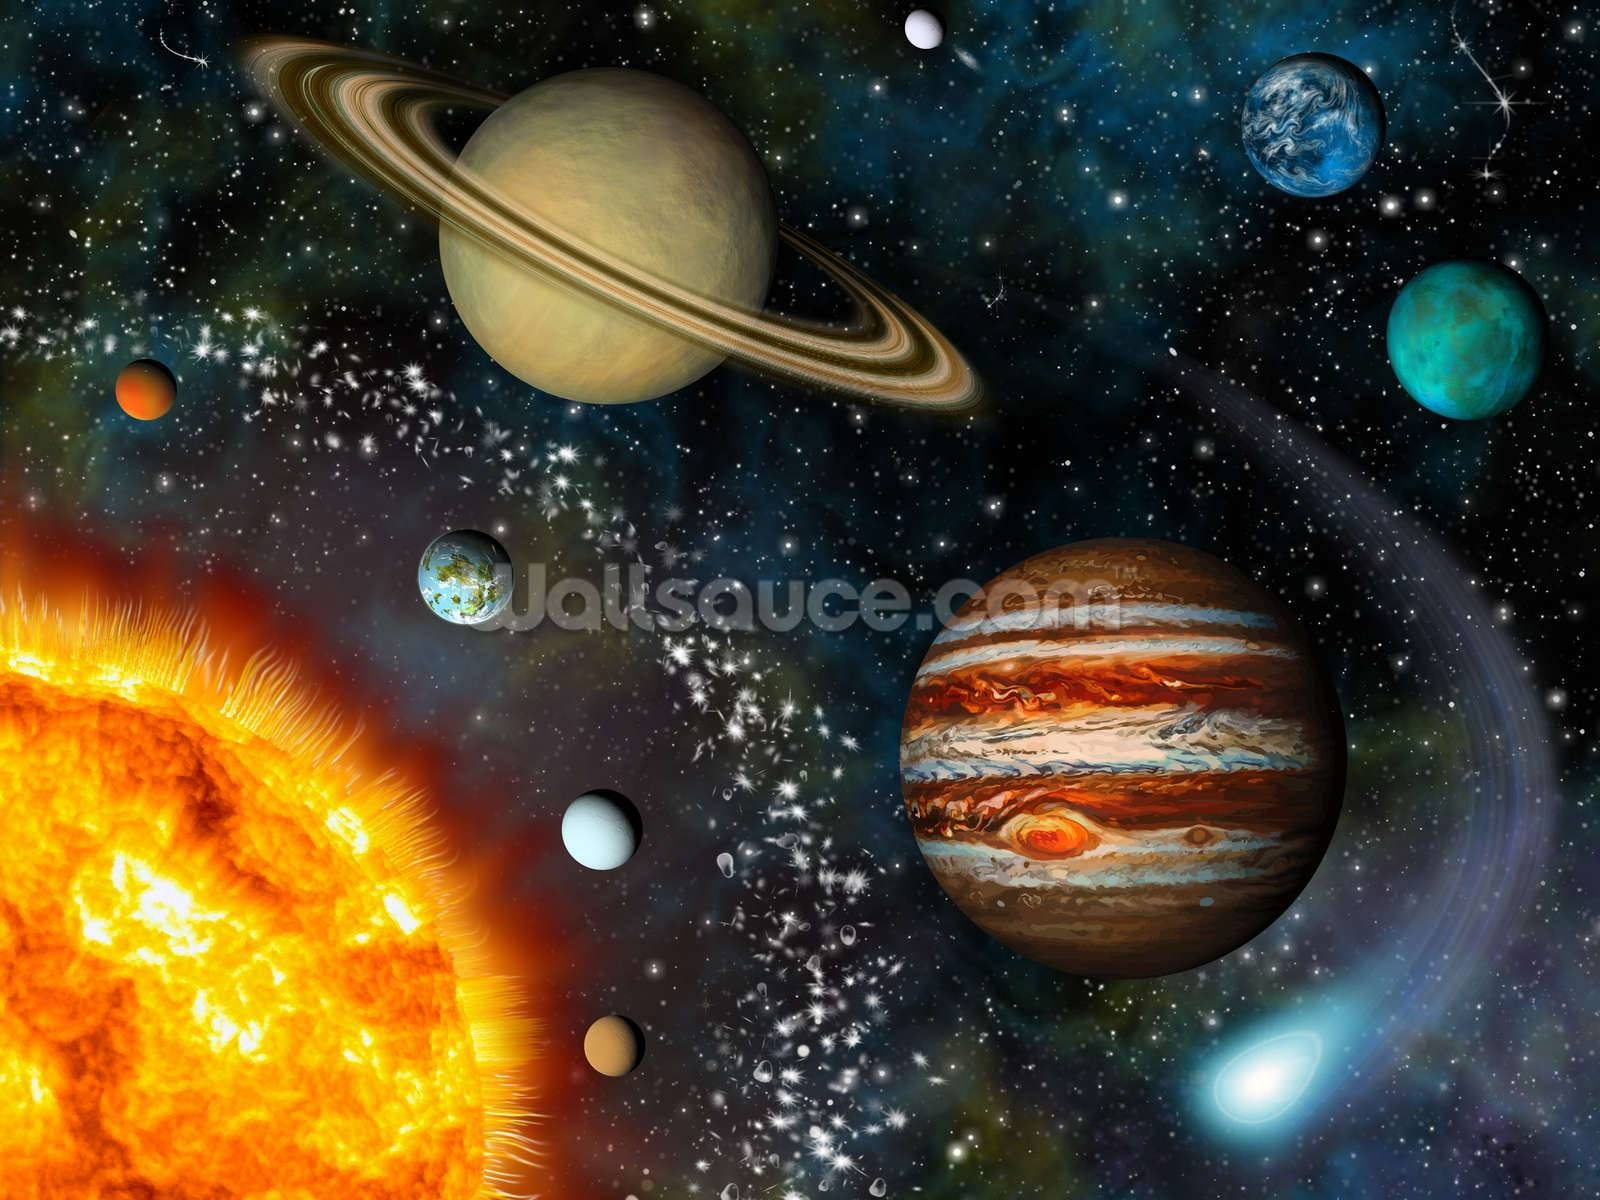 3D Solar System Wallpaper Wall Mural | Wallsauce Usa For Most Current 3D Solar System Wall Art Decor (View 6 of 20)